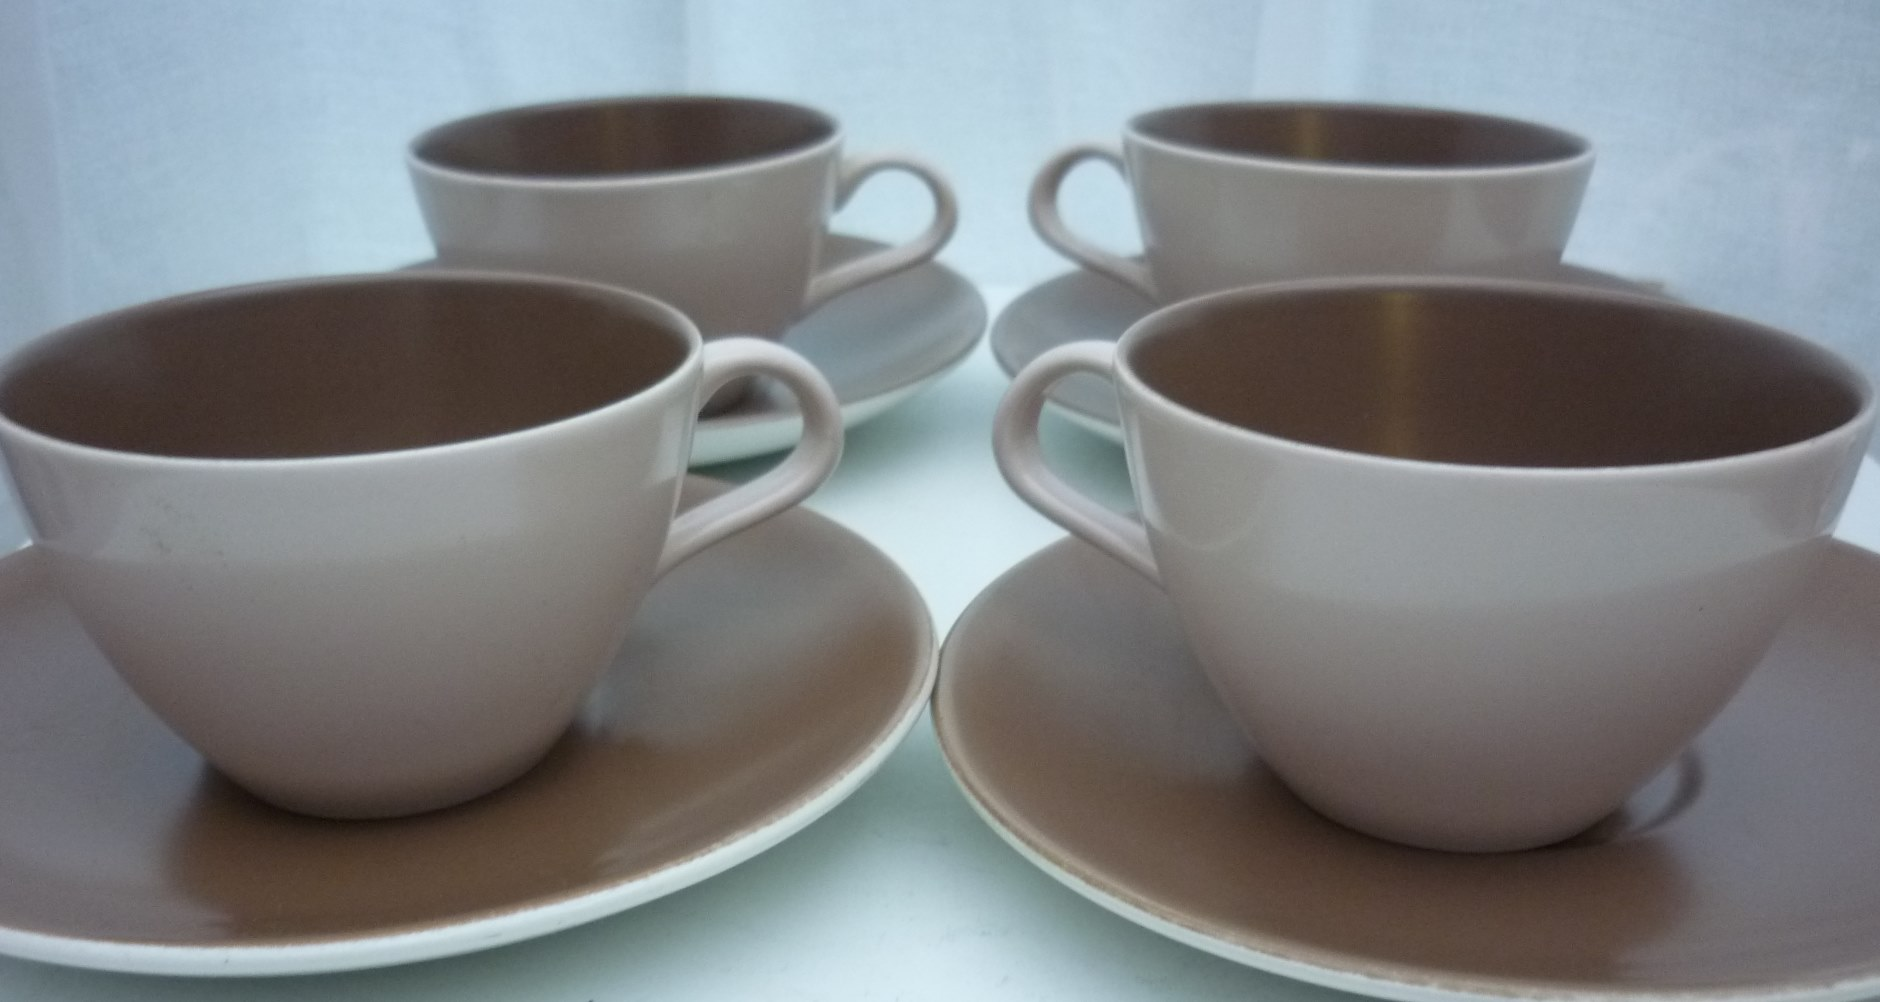 A set of 4 No. 60s vintage  Mushroom and Sepia Tea Cups and Saucers.